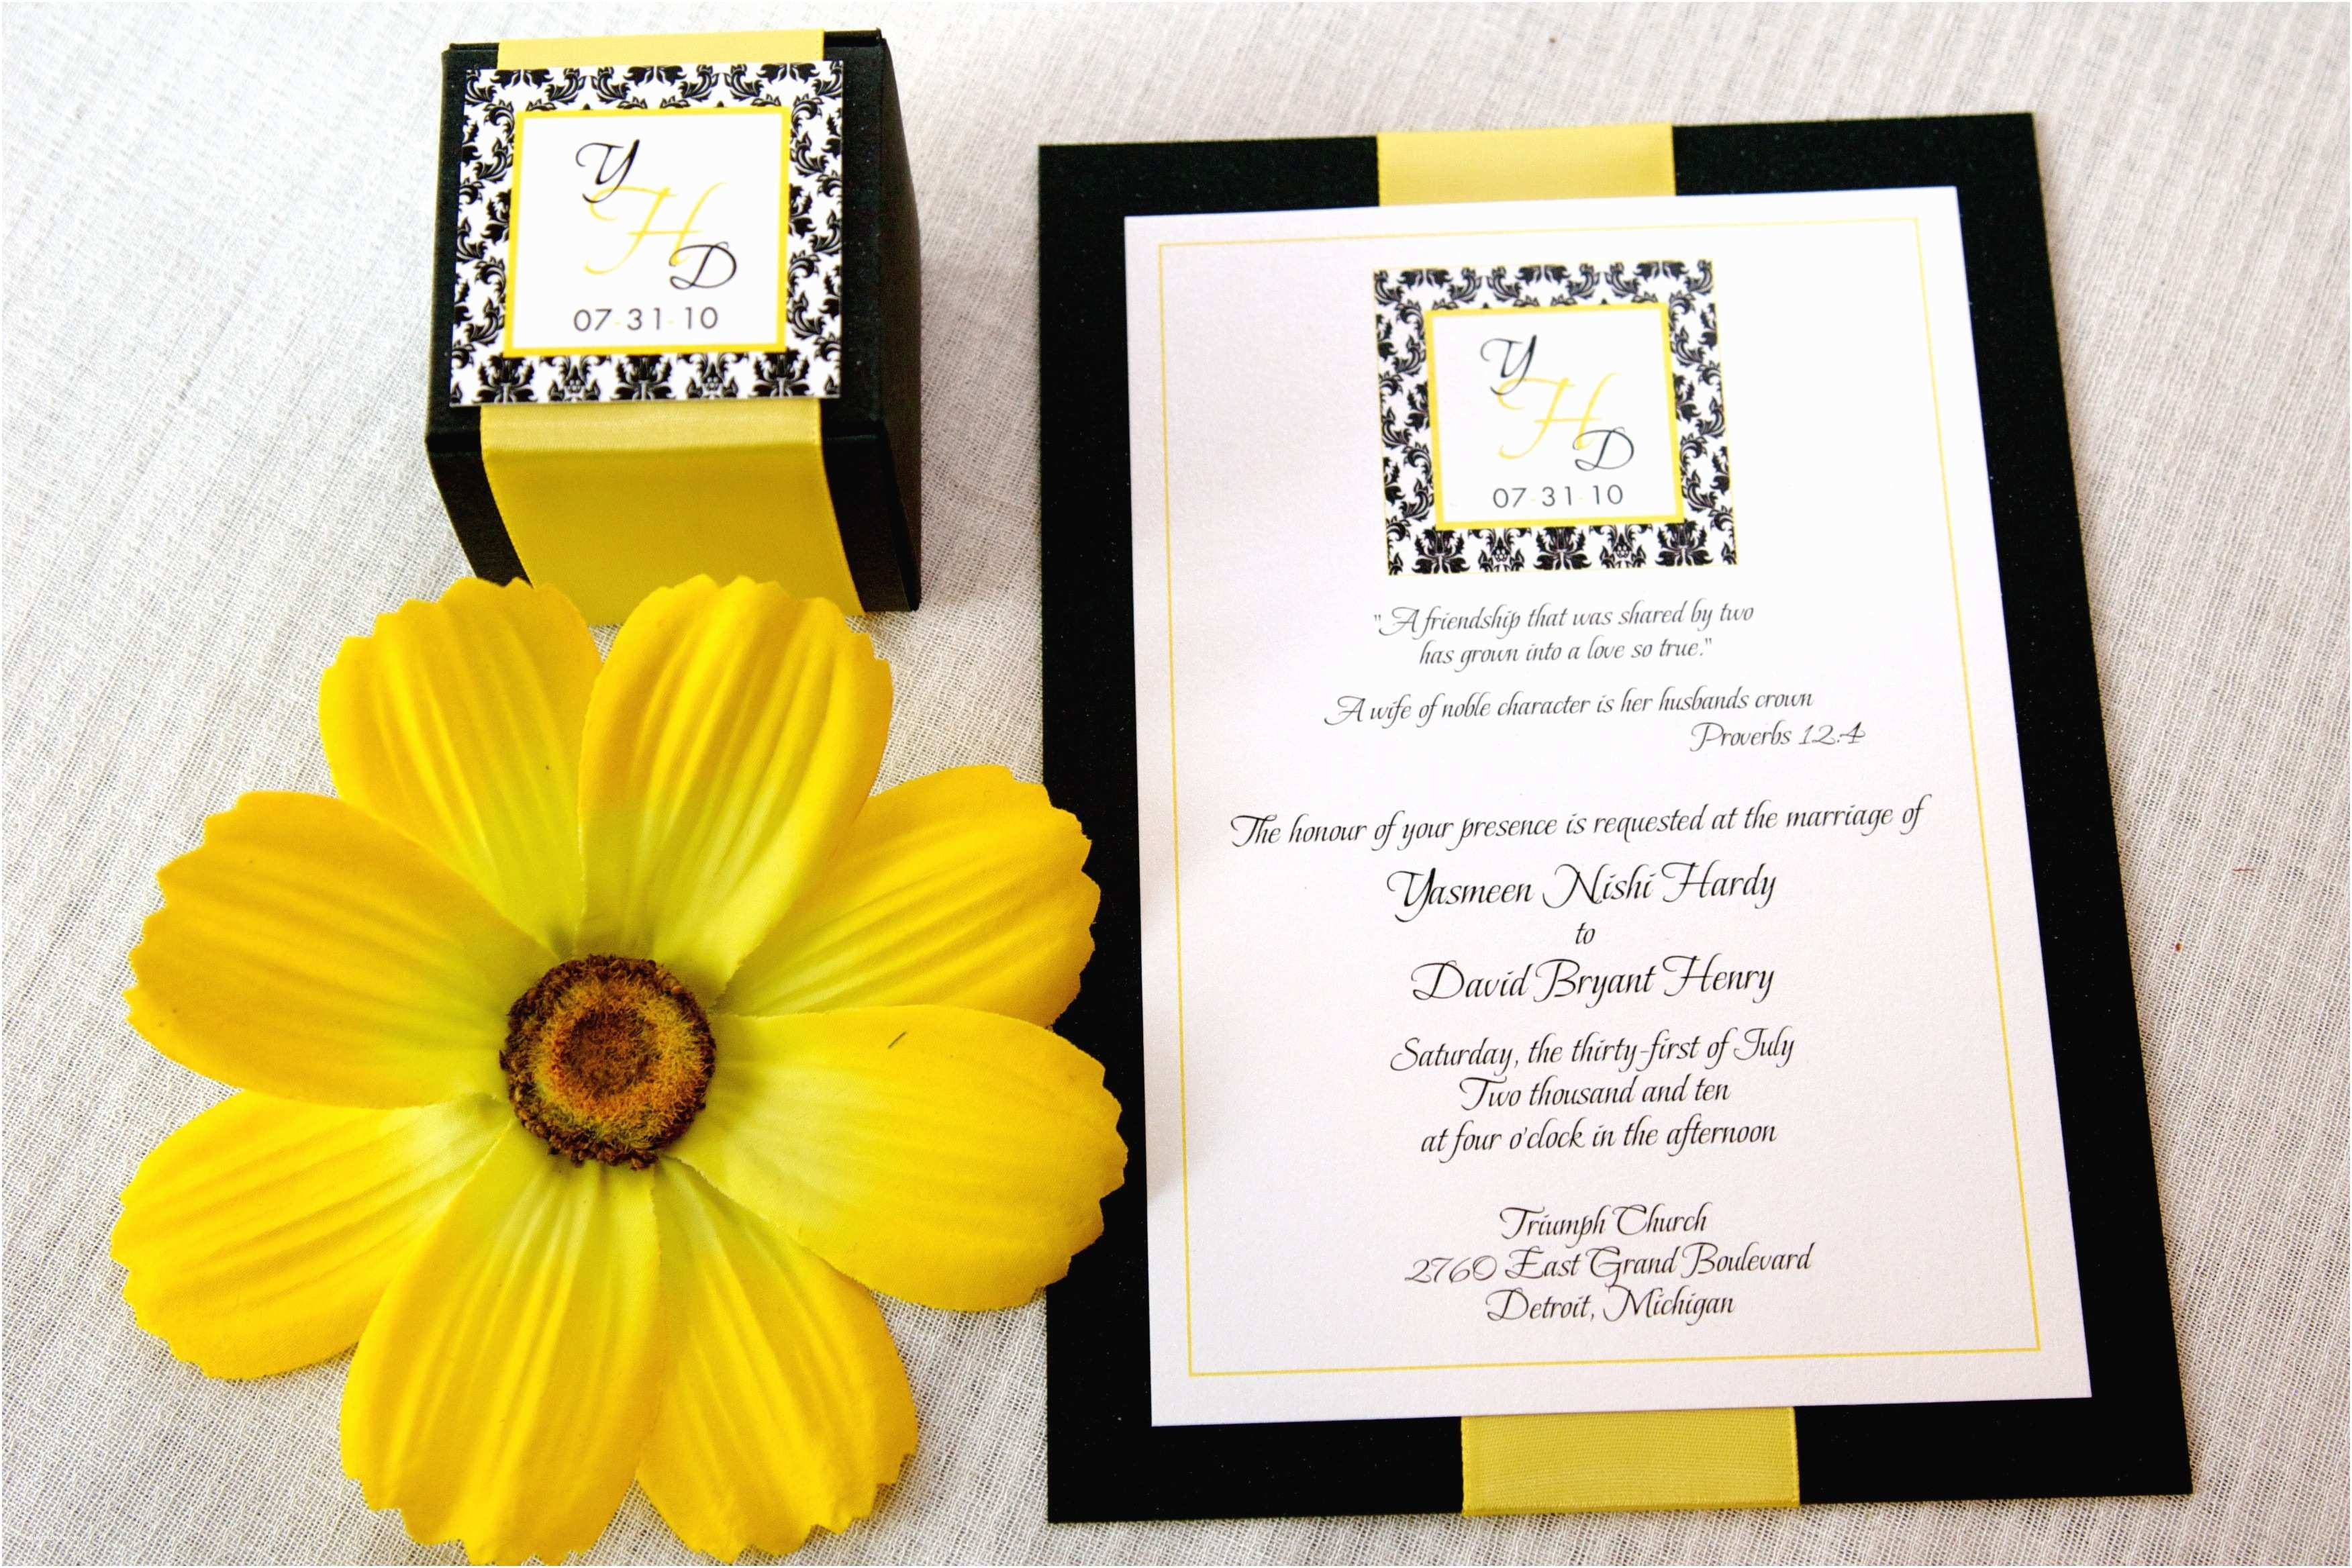 Online Wedding Invitations Uk Design Your Own Wedding Invitations Uk Efcaviation